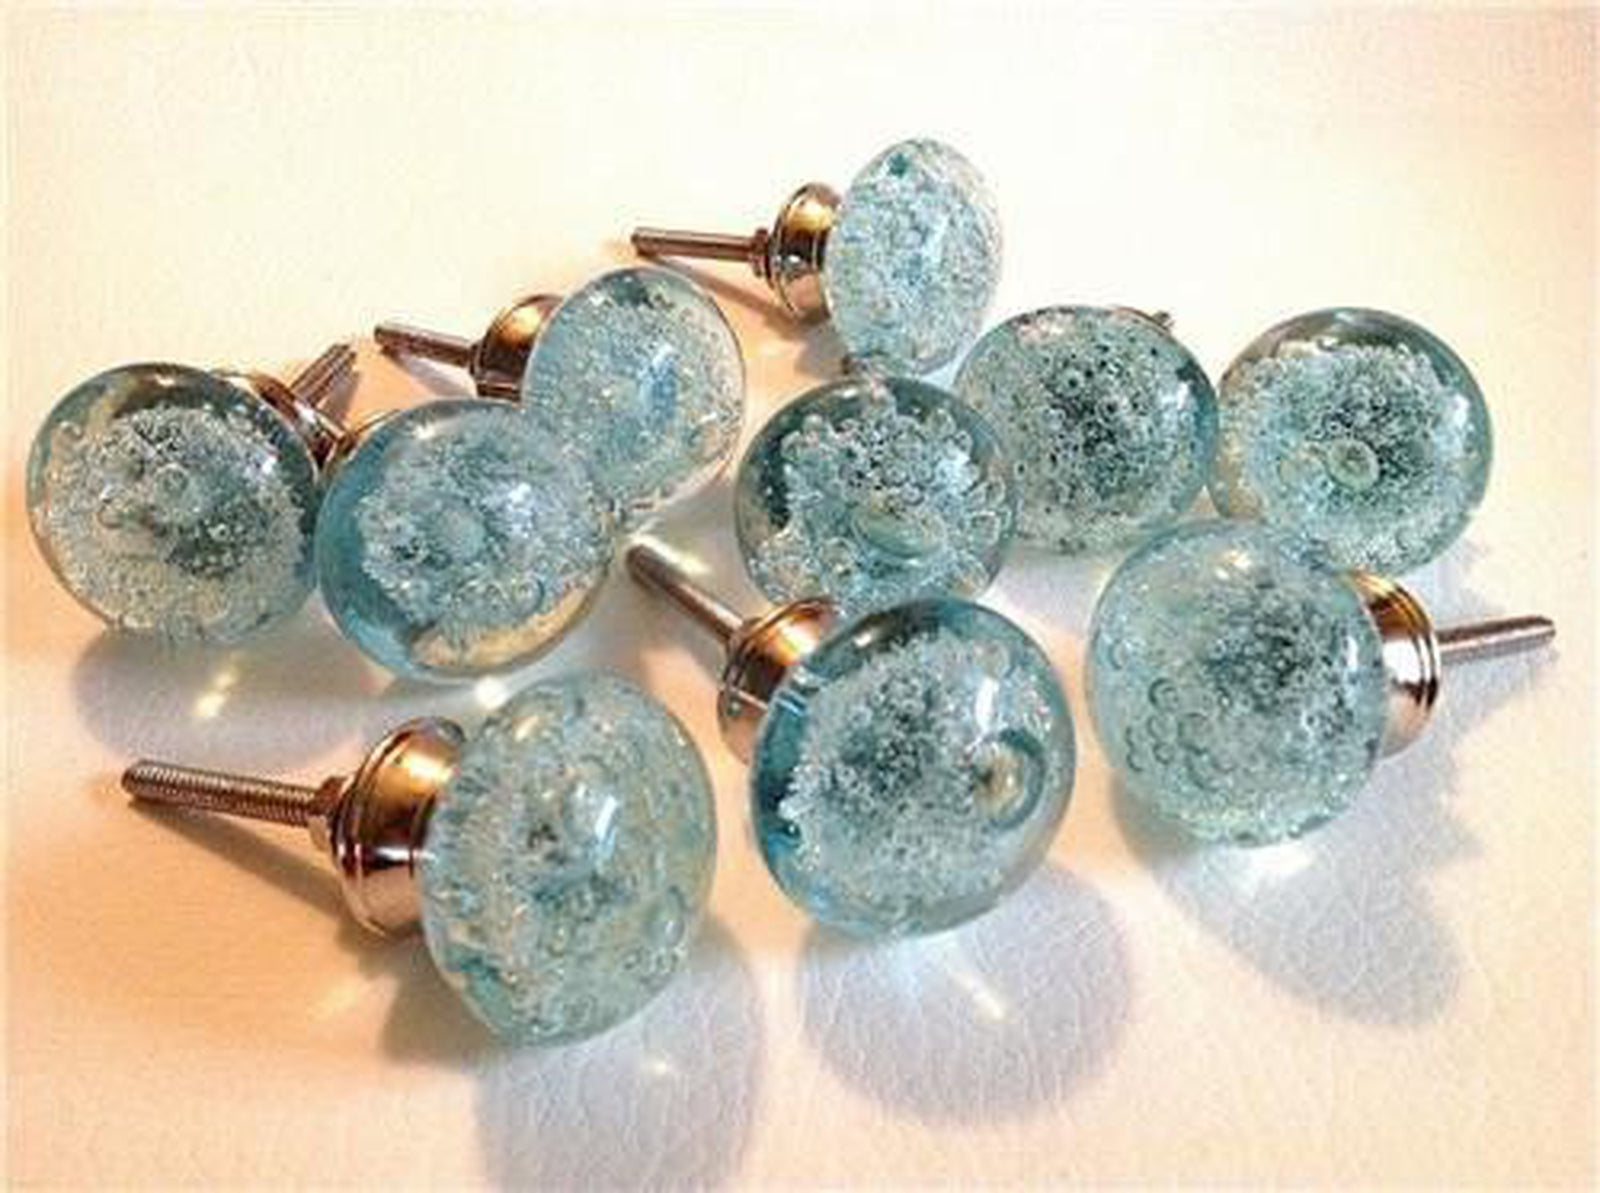 Glass And Porcelain Cabinet Knobs From Dwyer Home Collection